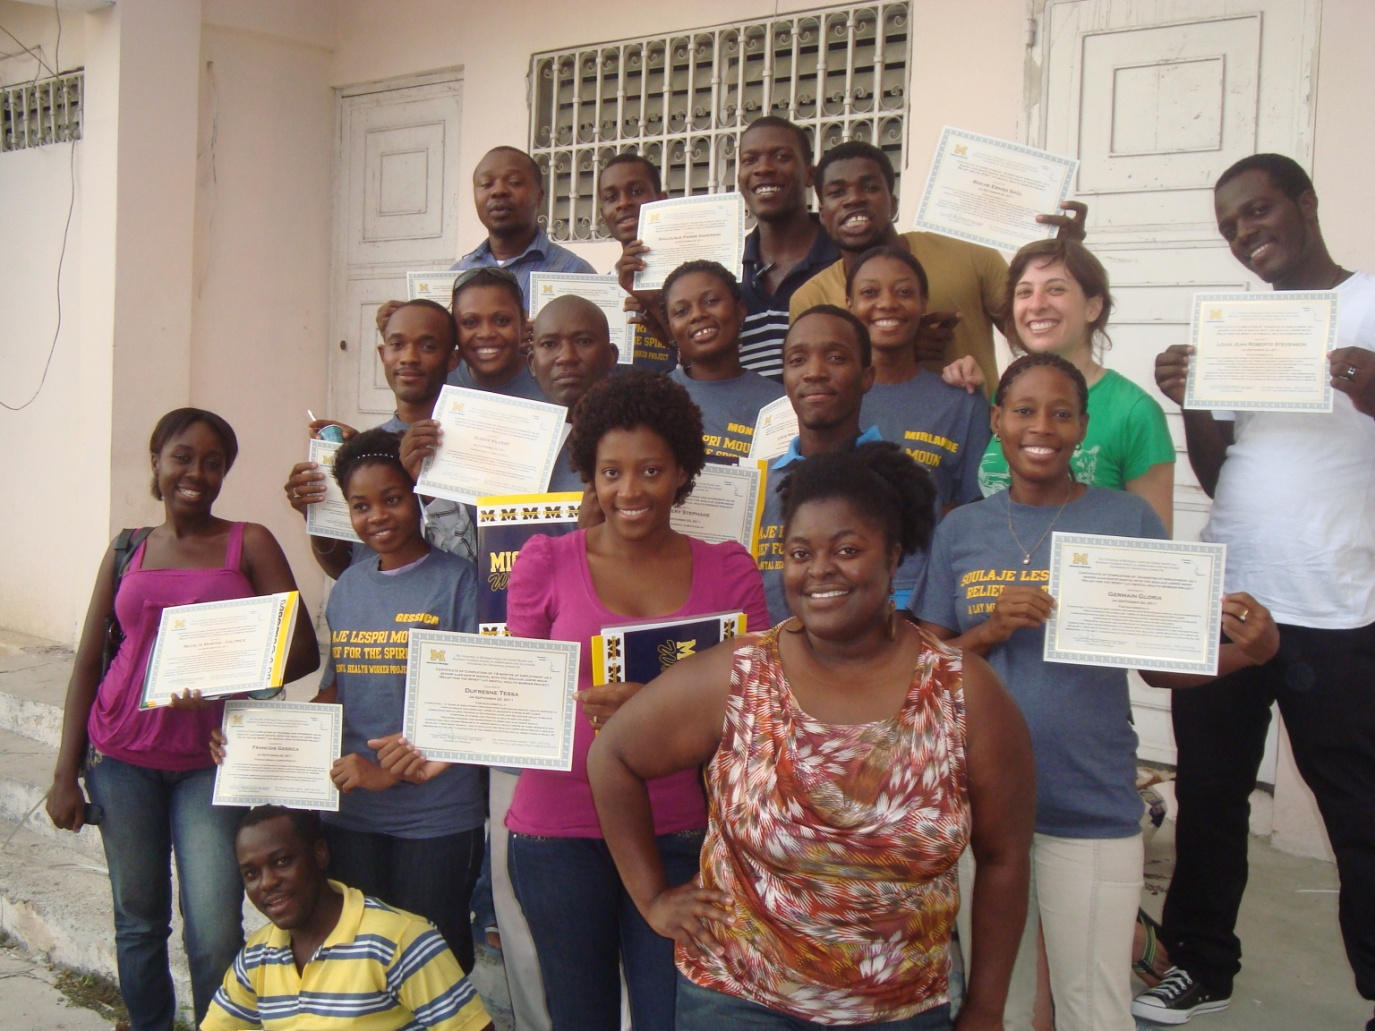 SLM staff receiving certificates of completion following training session